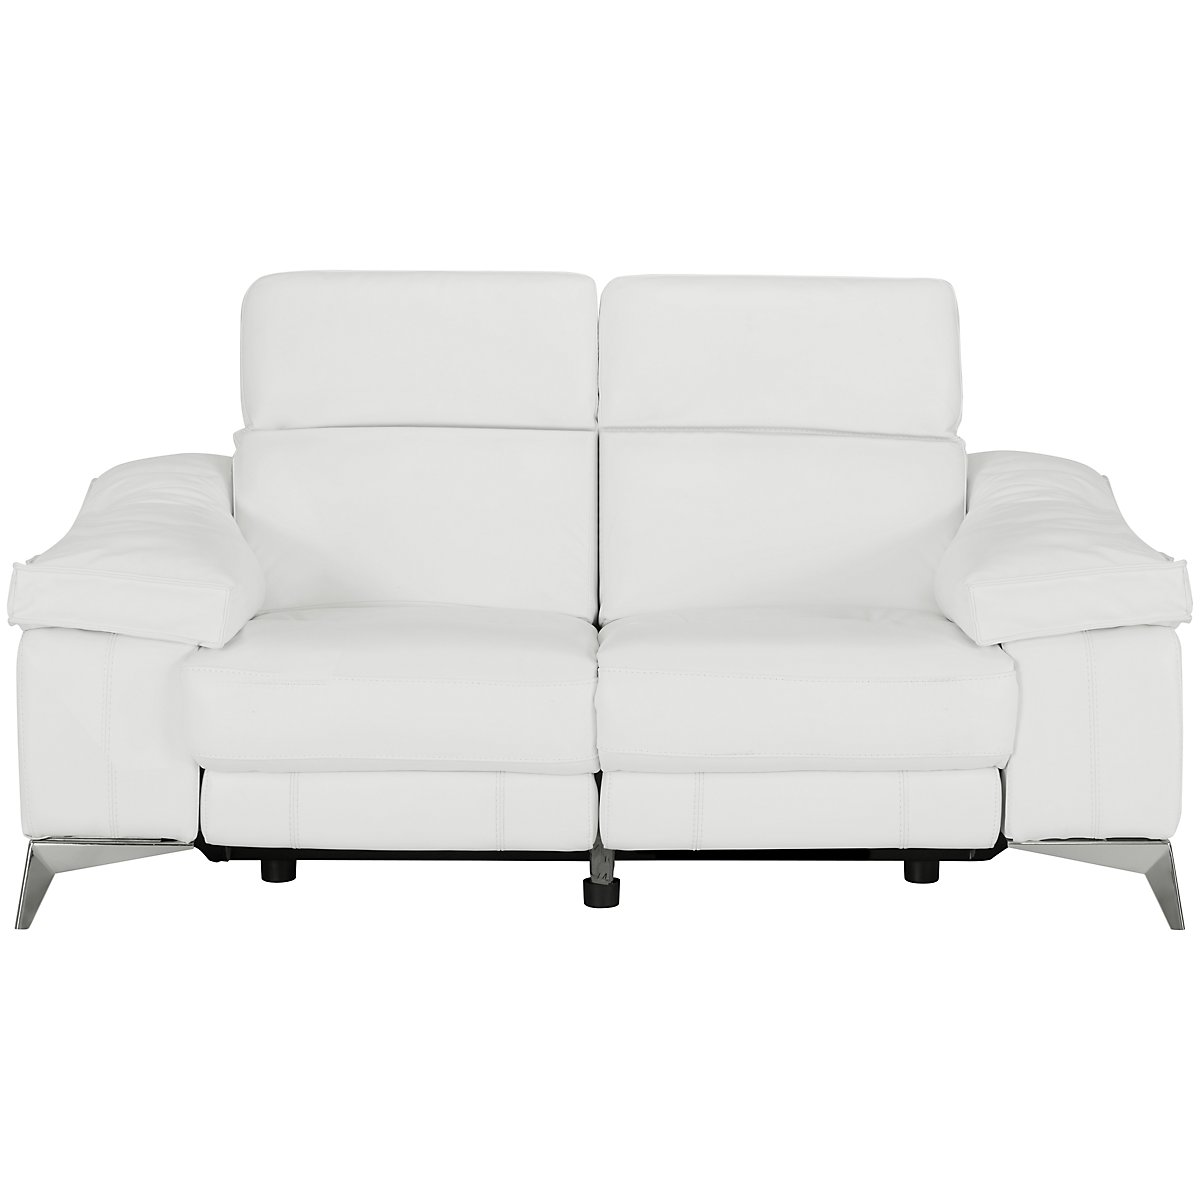 City Furniture Luca White Leather Vinyl Power Reclining